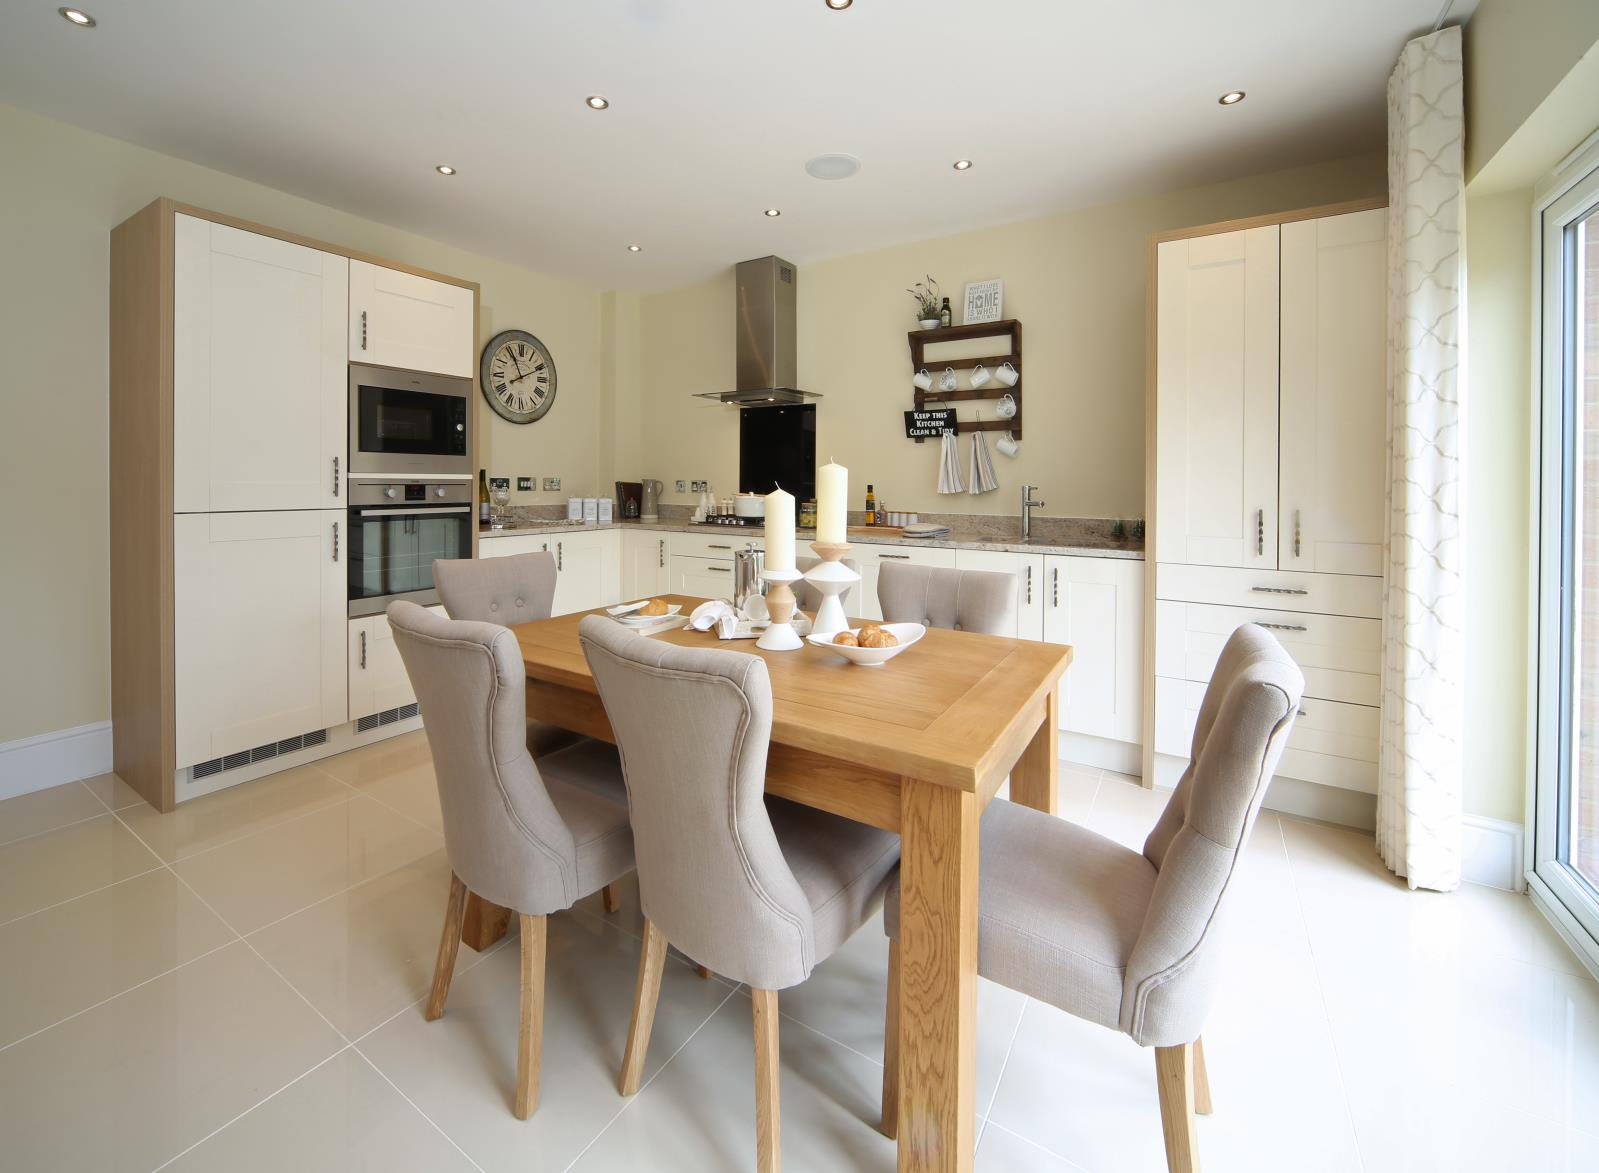 marlow-kitchen-27661